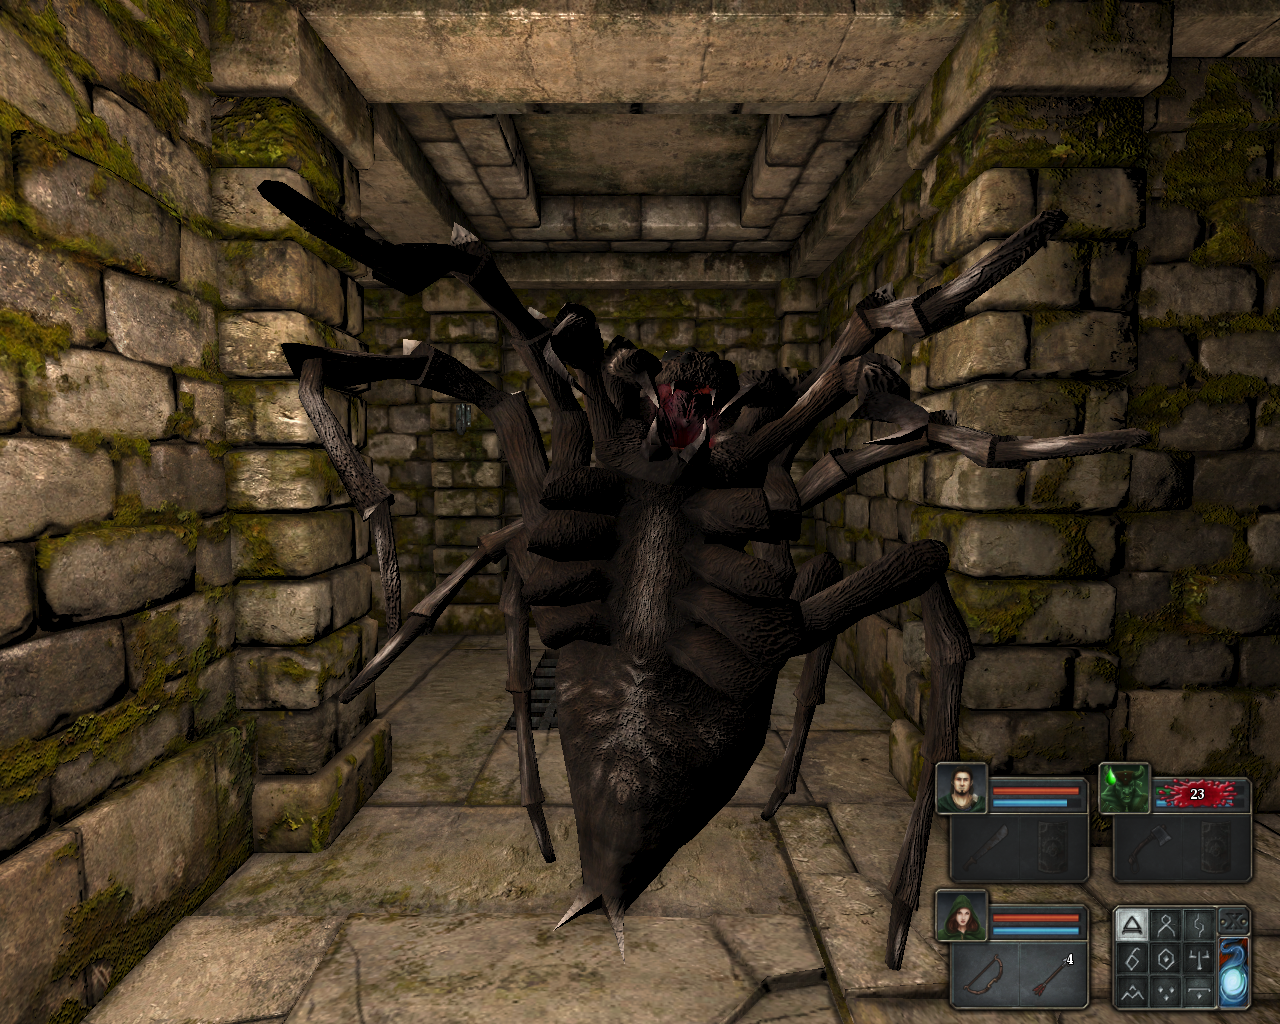 Legend of Grimrock Windows Spider!